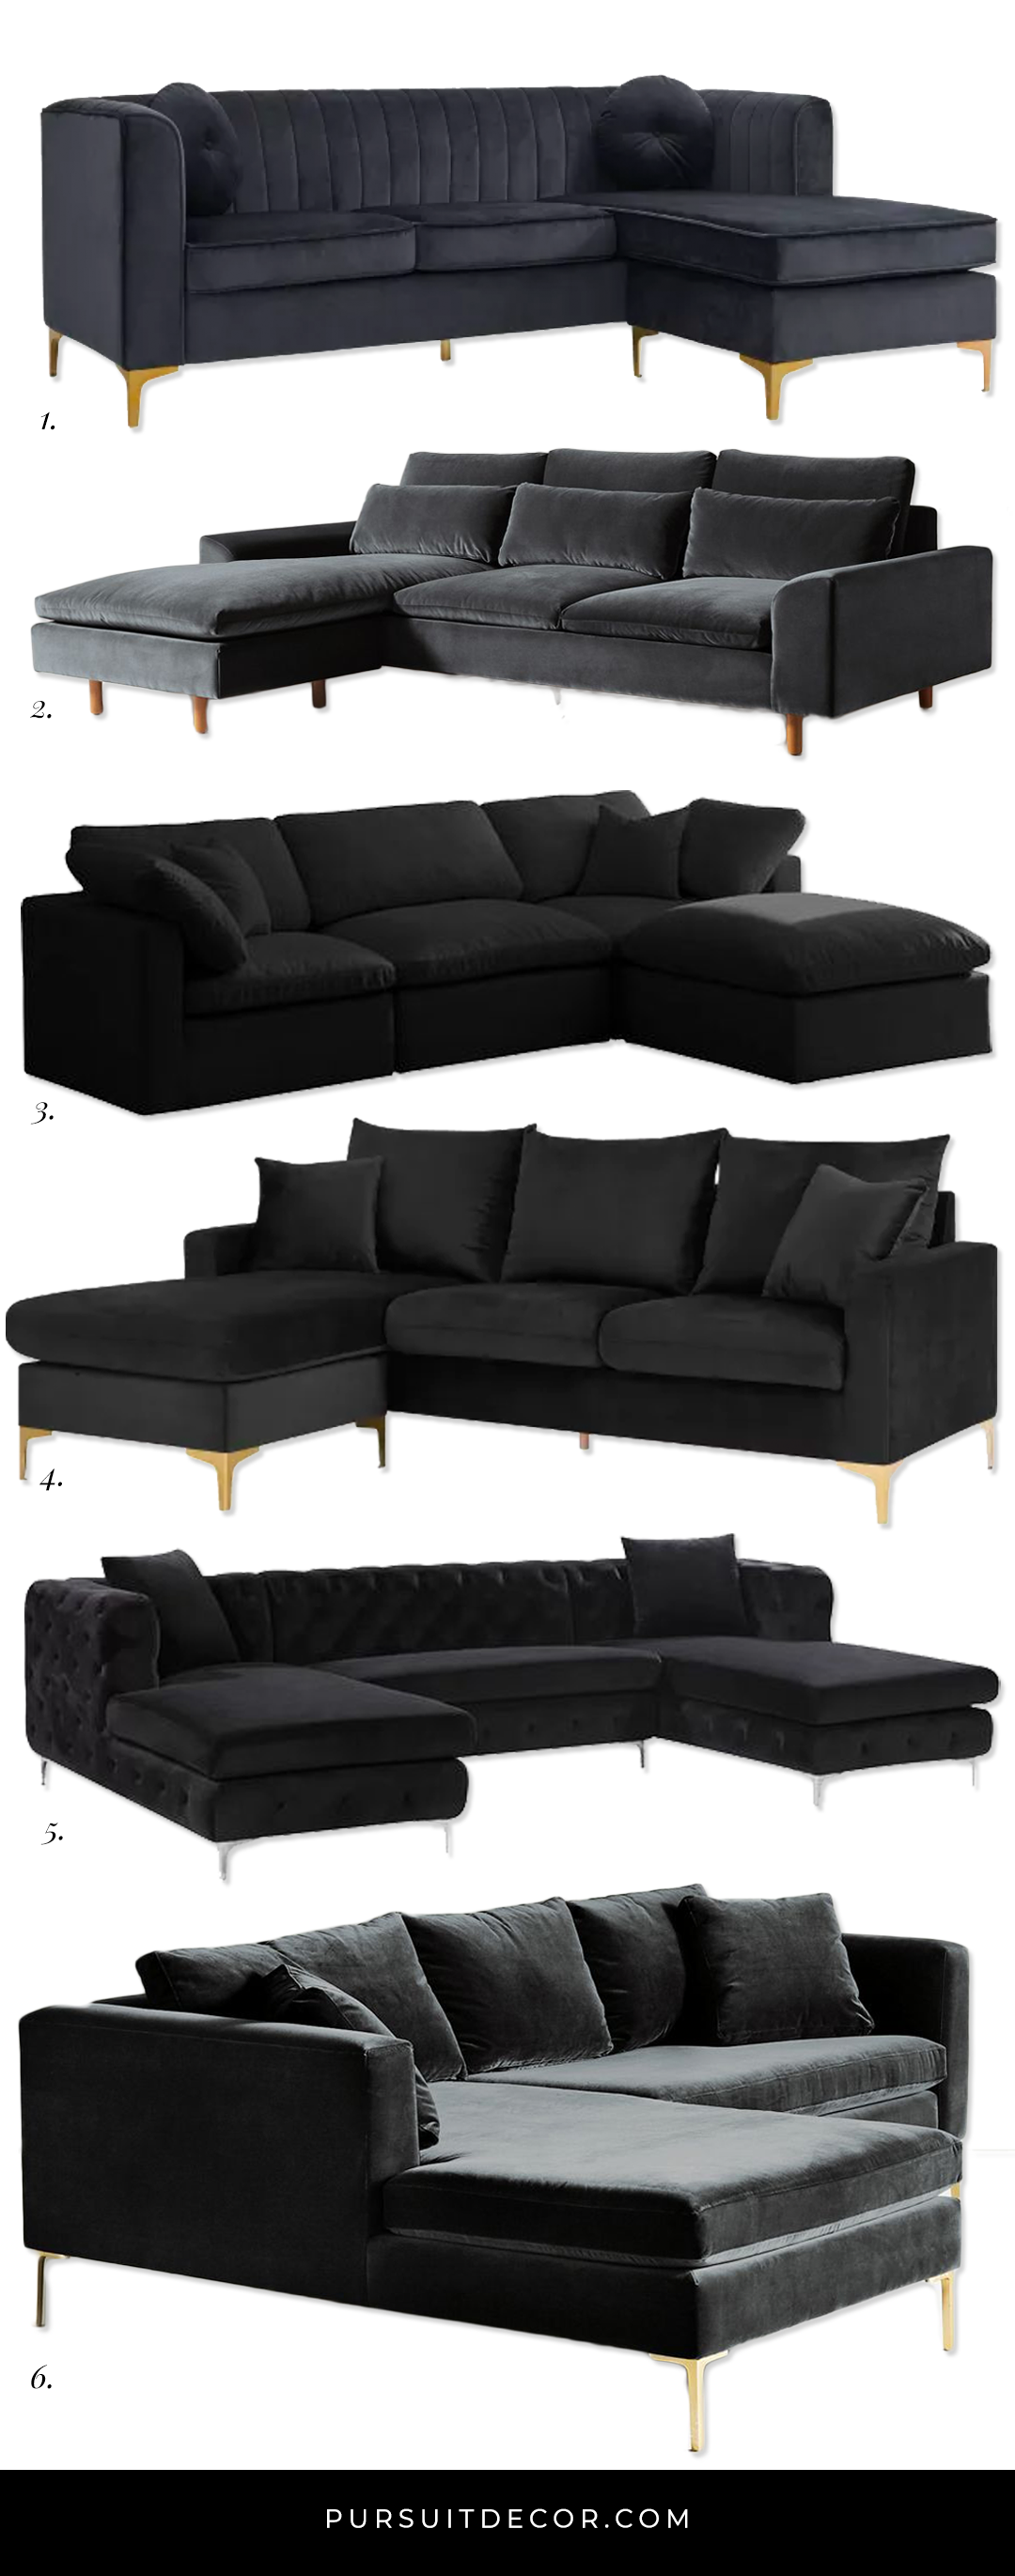 6 Luxurious Black Sectional Sofas You'll Love - Pursuit Decor. Affordable black velvet sofas via Wayfair, Target and Anthropologie.